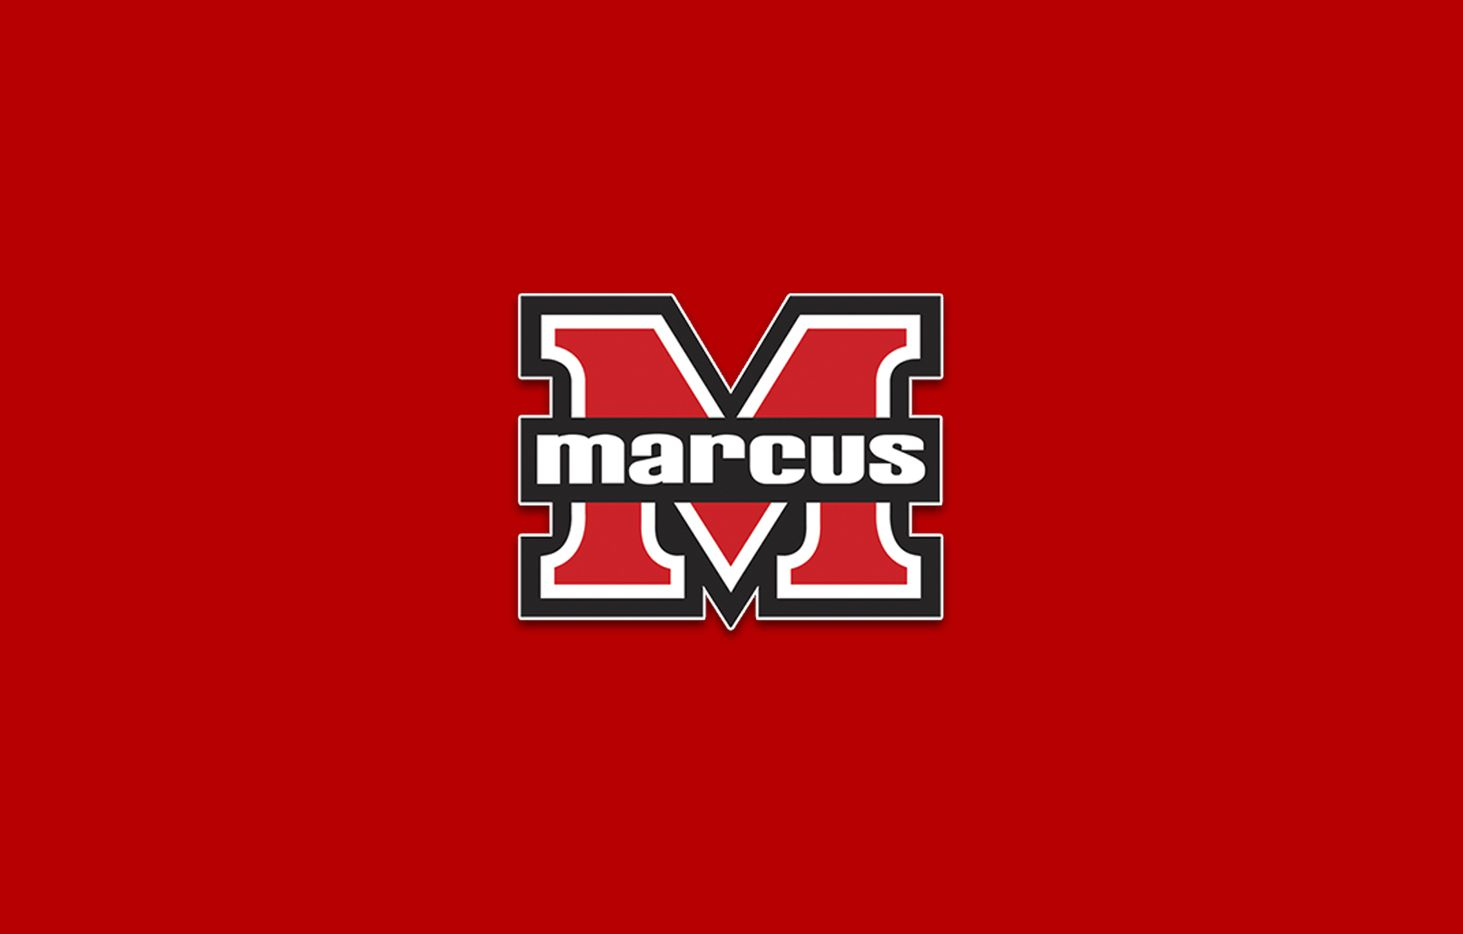 Flower Mound Marcus logo.